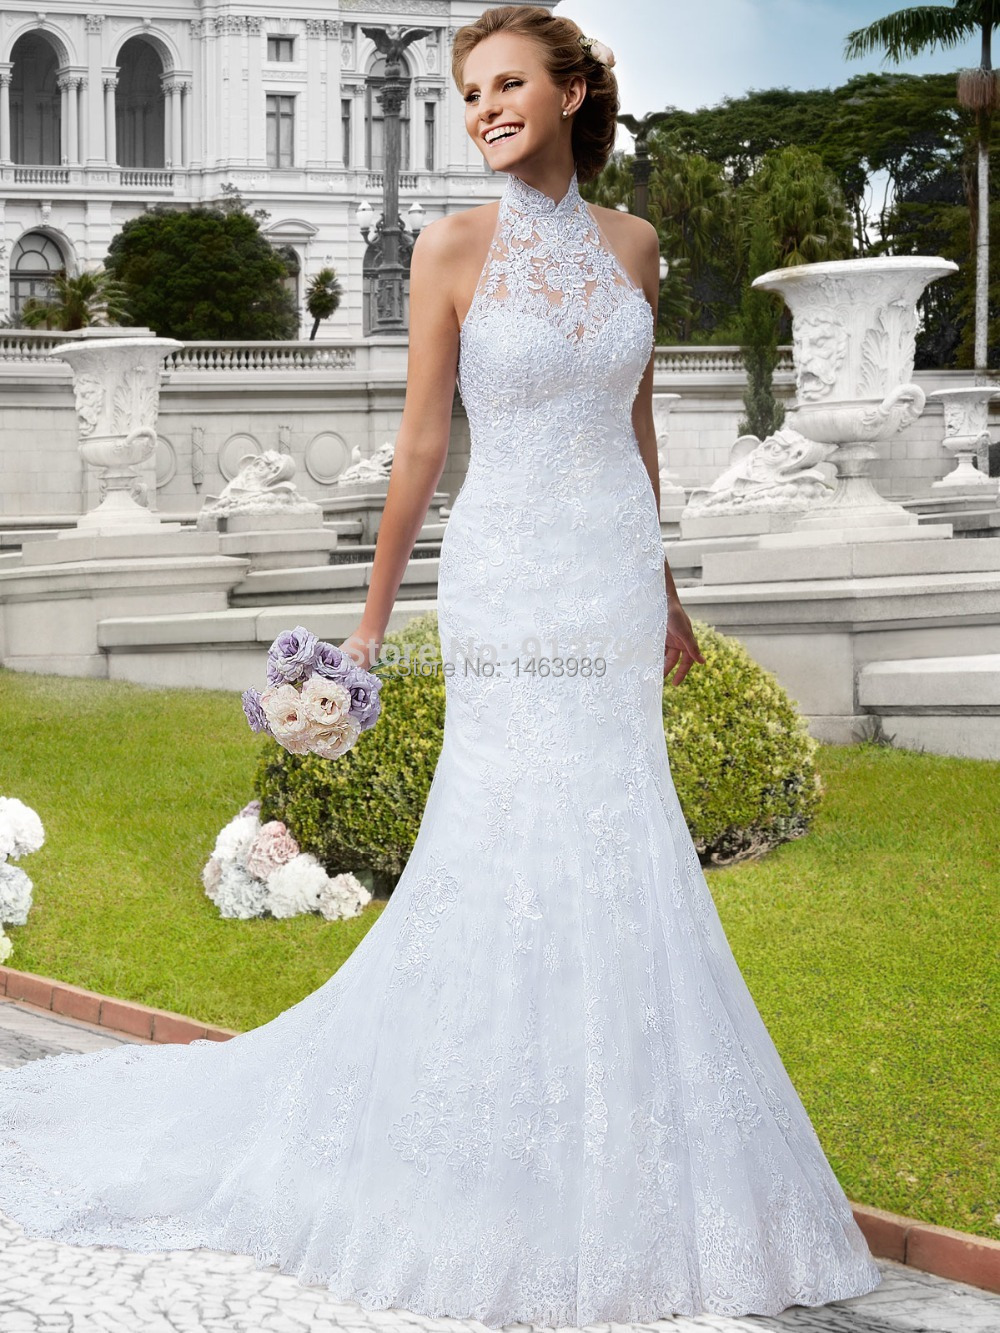 Hot sale halter mermaid wedding dresses strapless lace for Mermaid halter wedding dresses